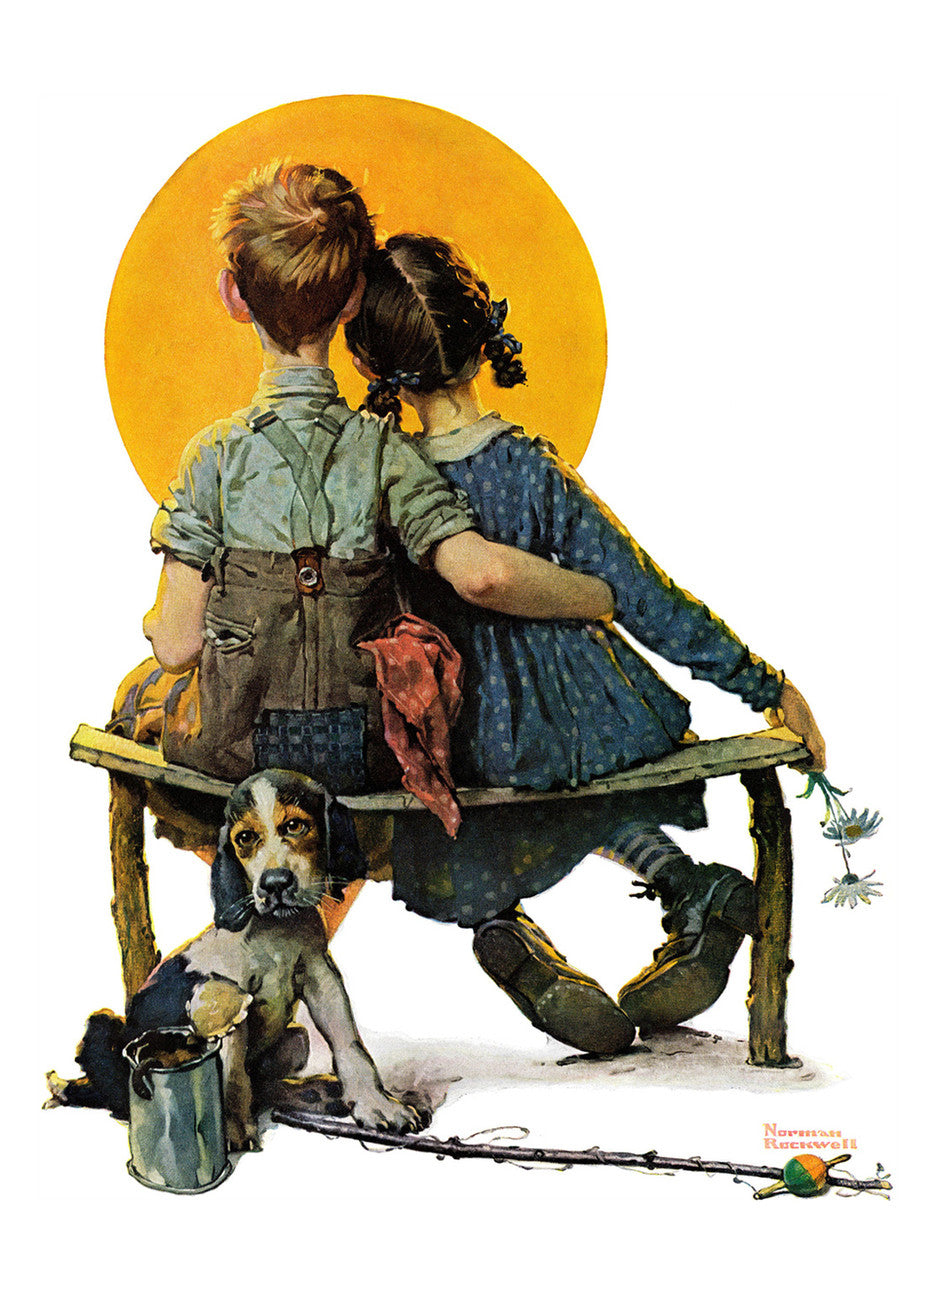 Norman Rockwell - Little Spooners or Sunset by Norman Rockwell | Buy ...